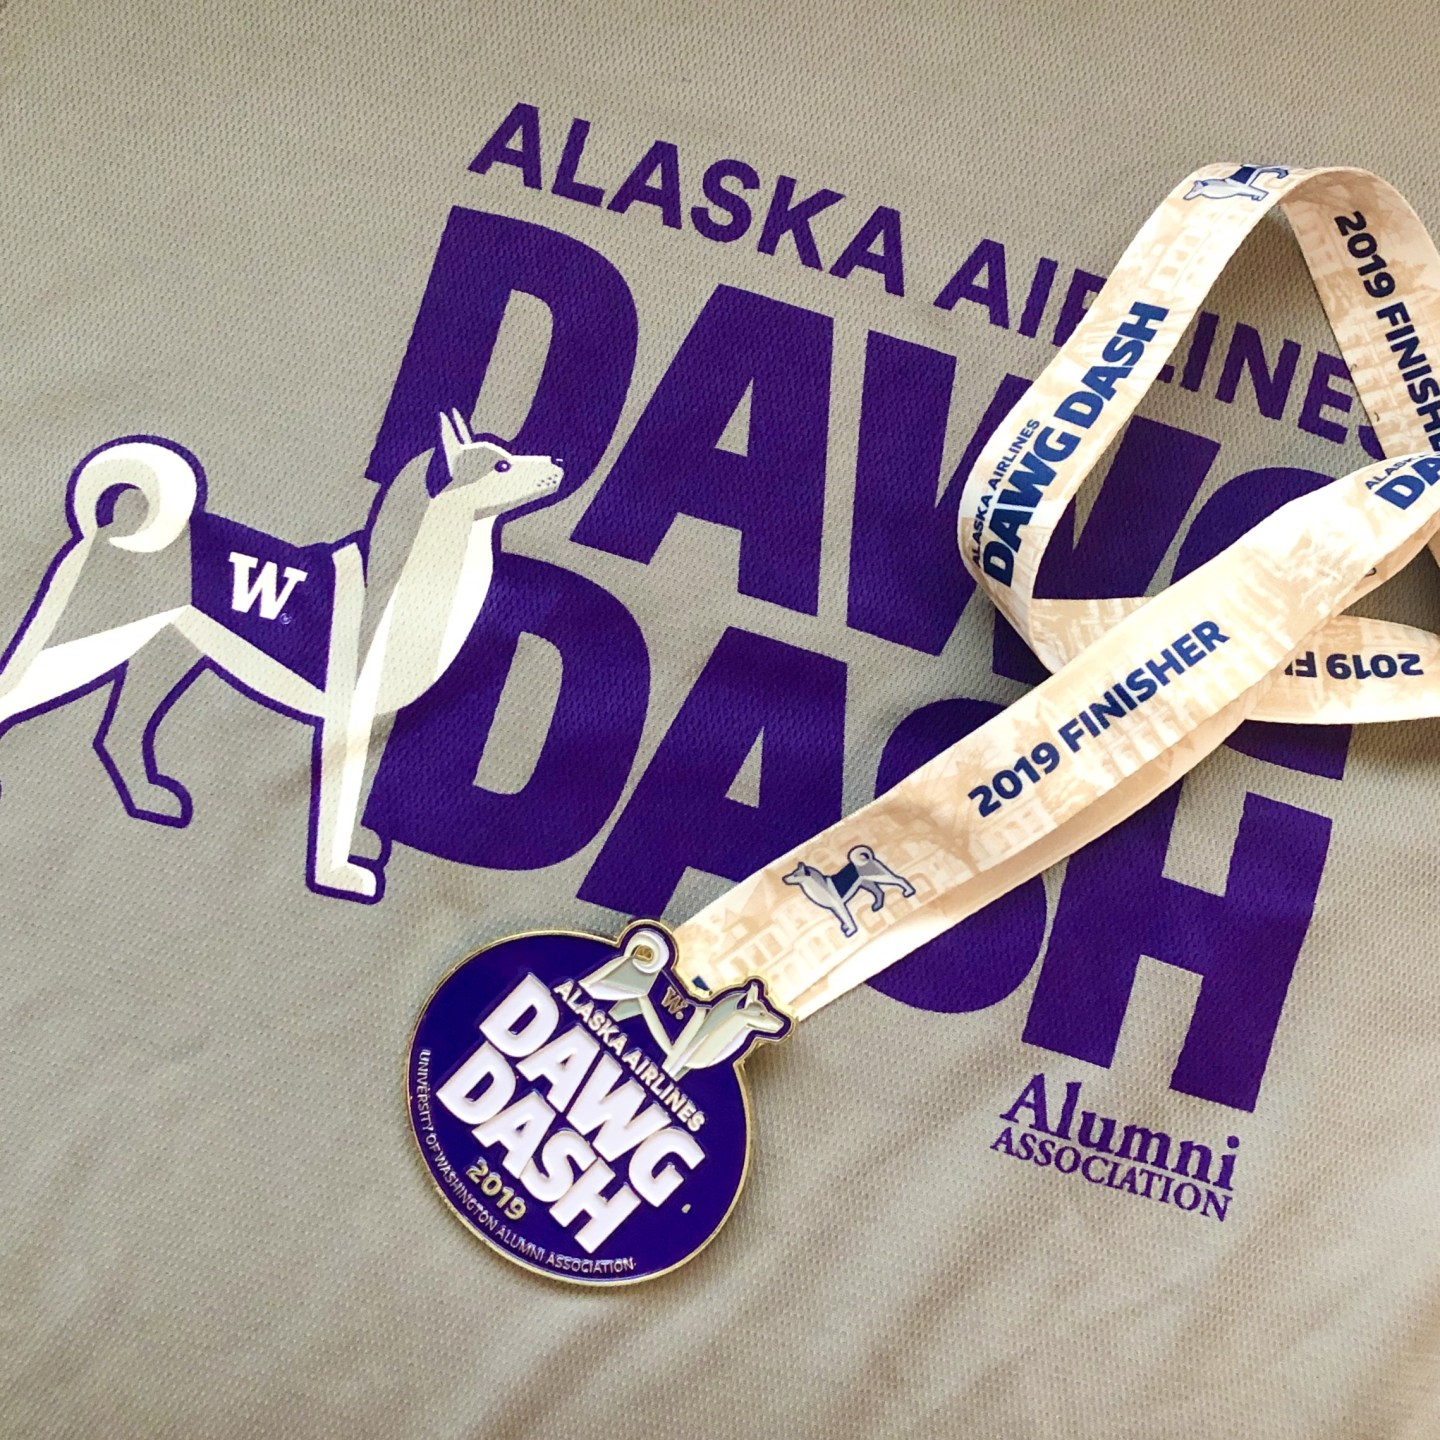 Dawg Dash 5K – University of Washington